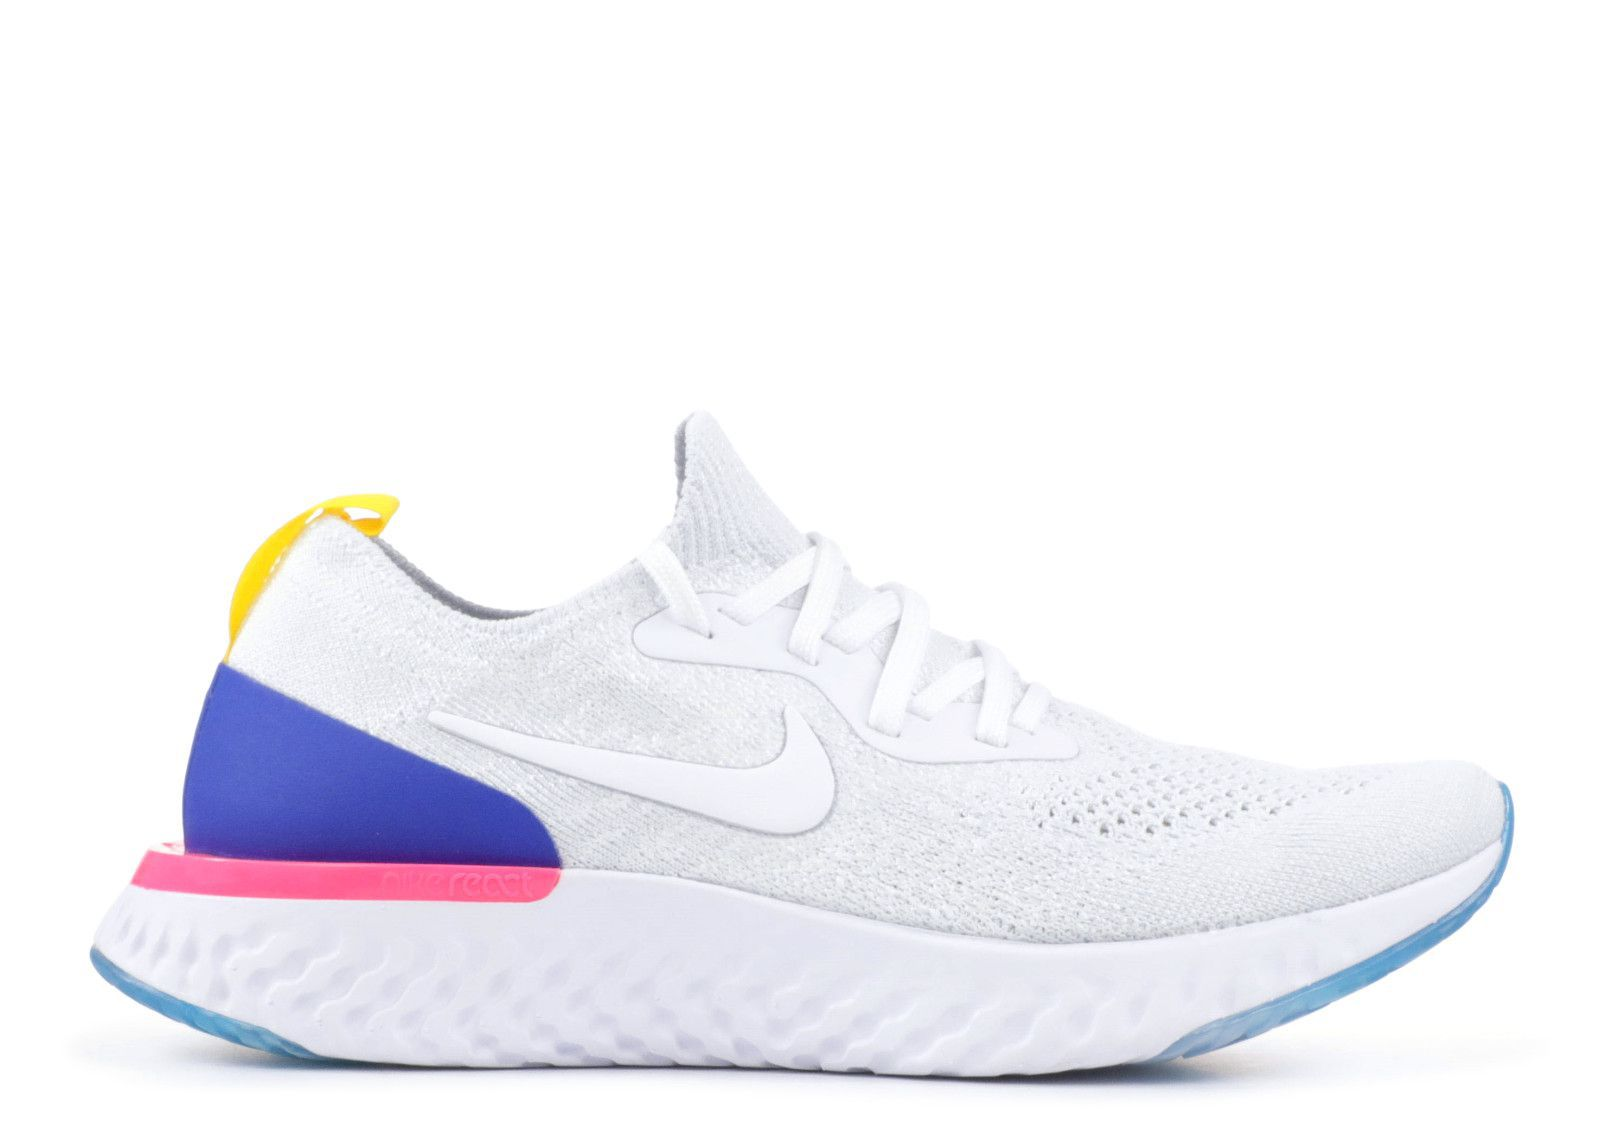 56c12162b4f Nike Epic React Flyknit White Running Shoes - Buy Nike Epic React Flyknit  White Running Shoes Online at Best Prices in India on Snapdeal